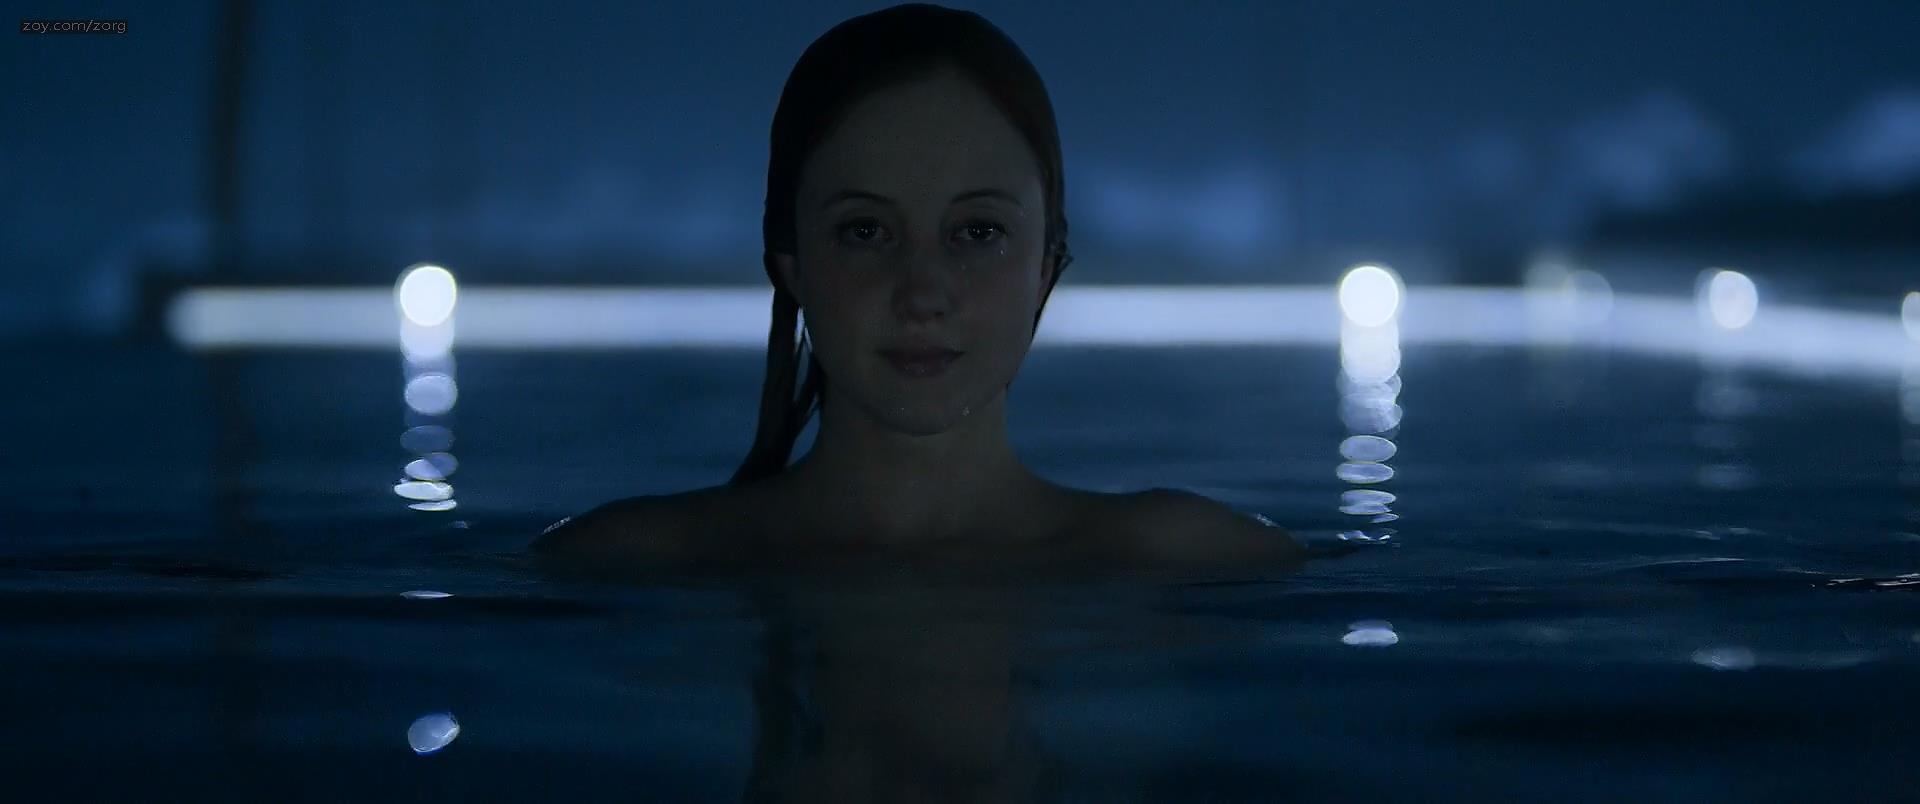 0025163920870_0_Andrea-Riseborough-nude-skinny-dipping-Oblivion-2013-hd1080p-8.jpg